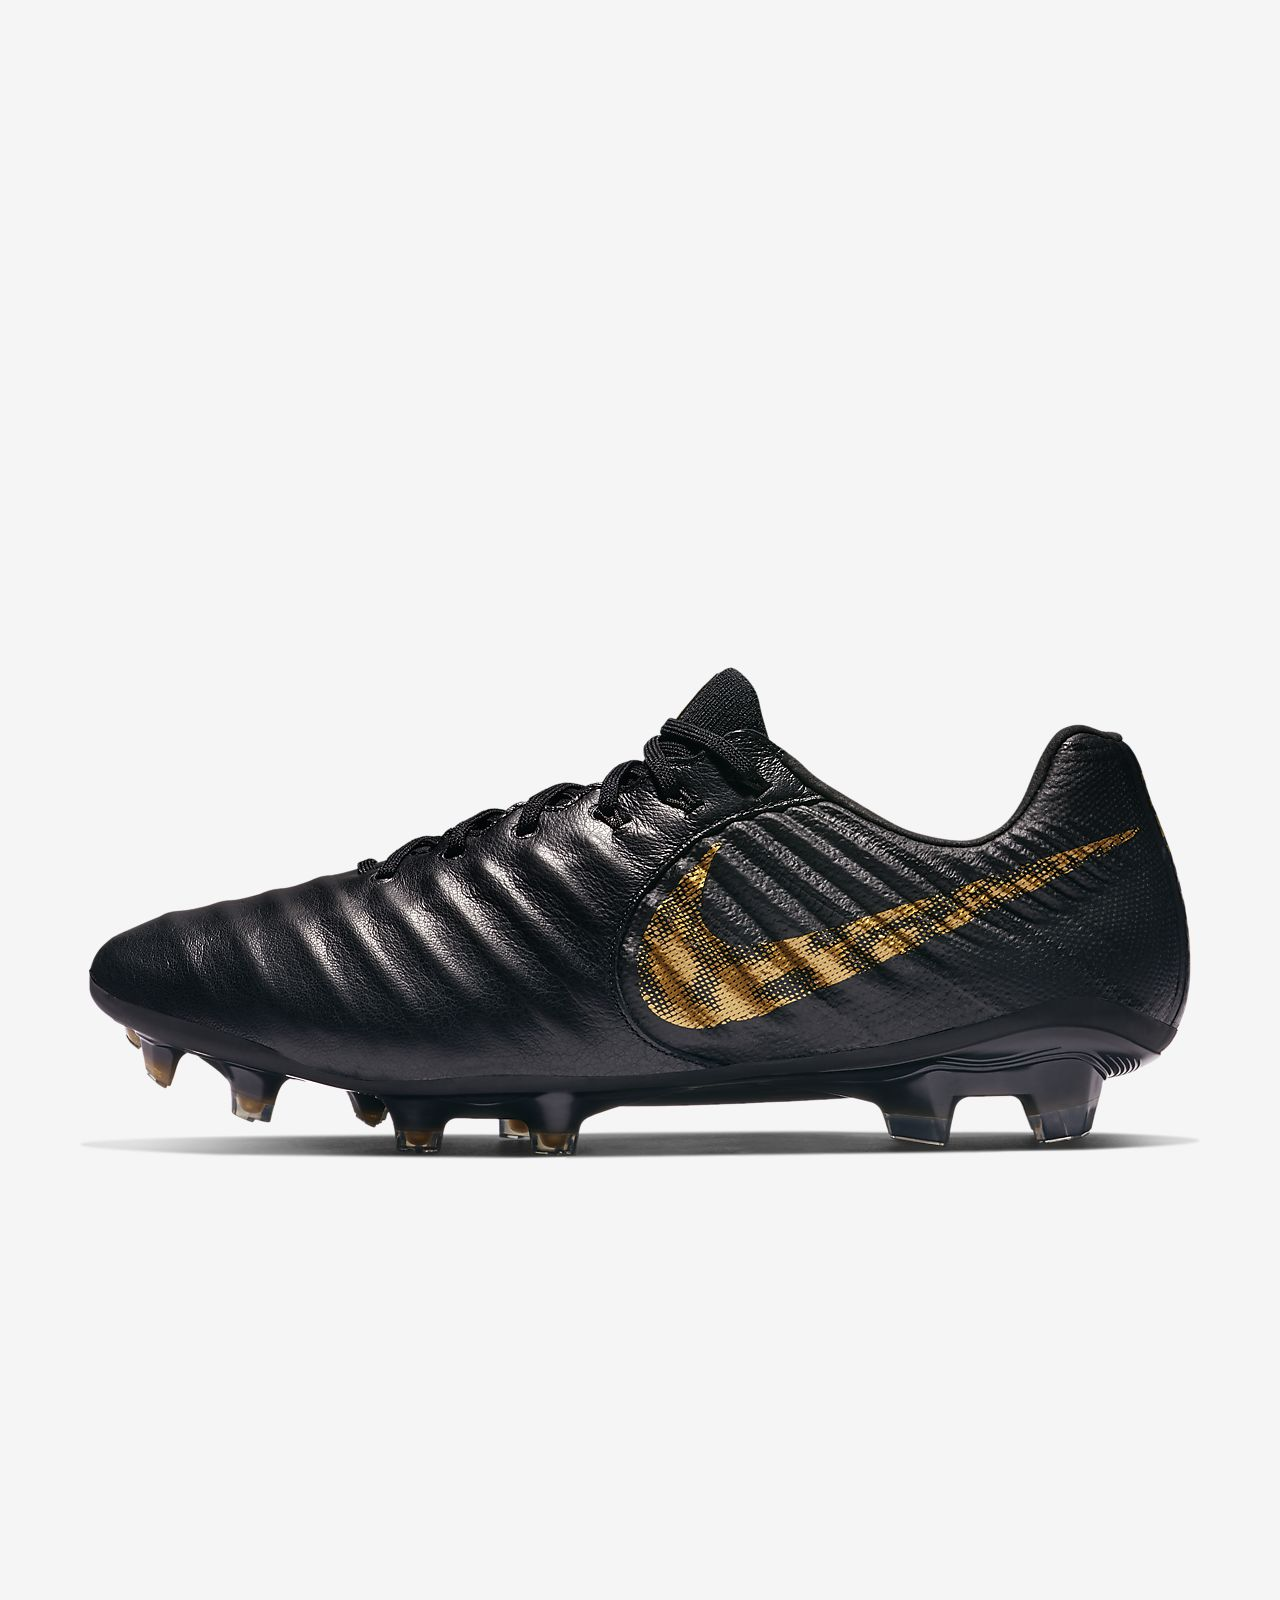 0fa296045681 Nike Tiempo Legend 7 Elite FG Firm-Ground Football Boot. Nike.com MY